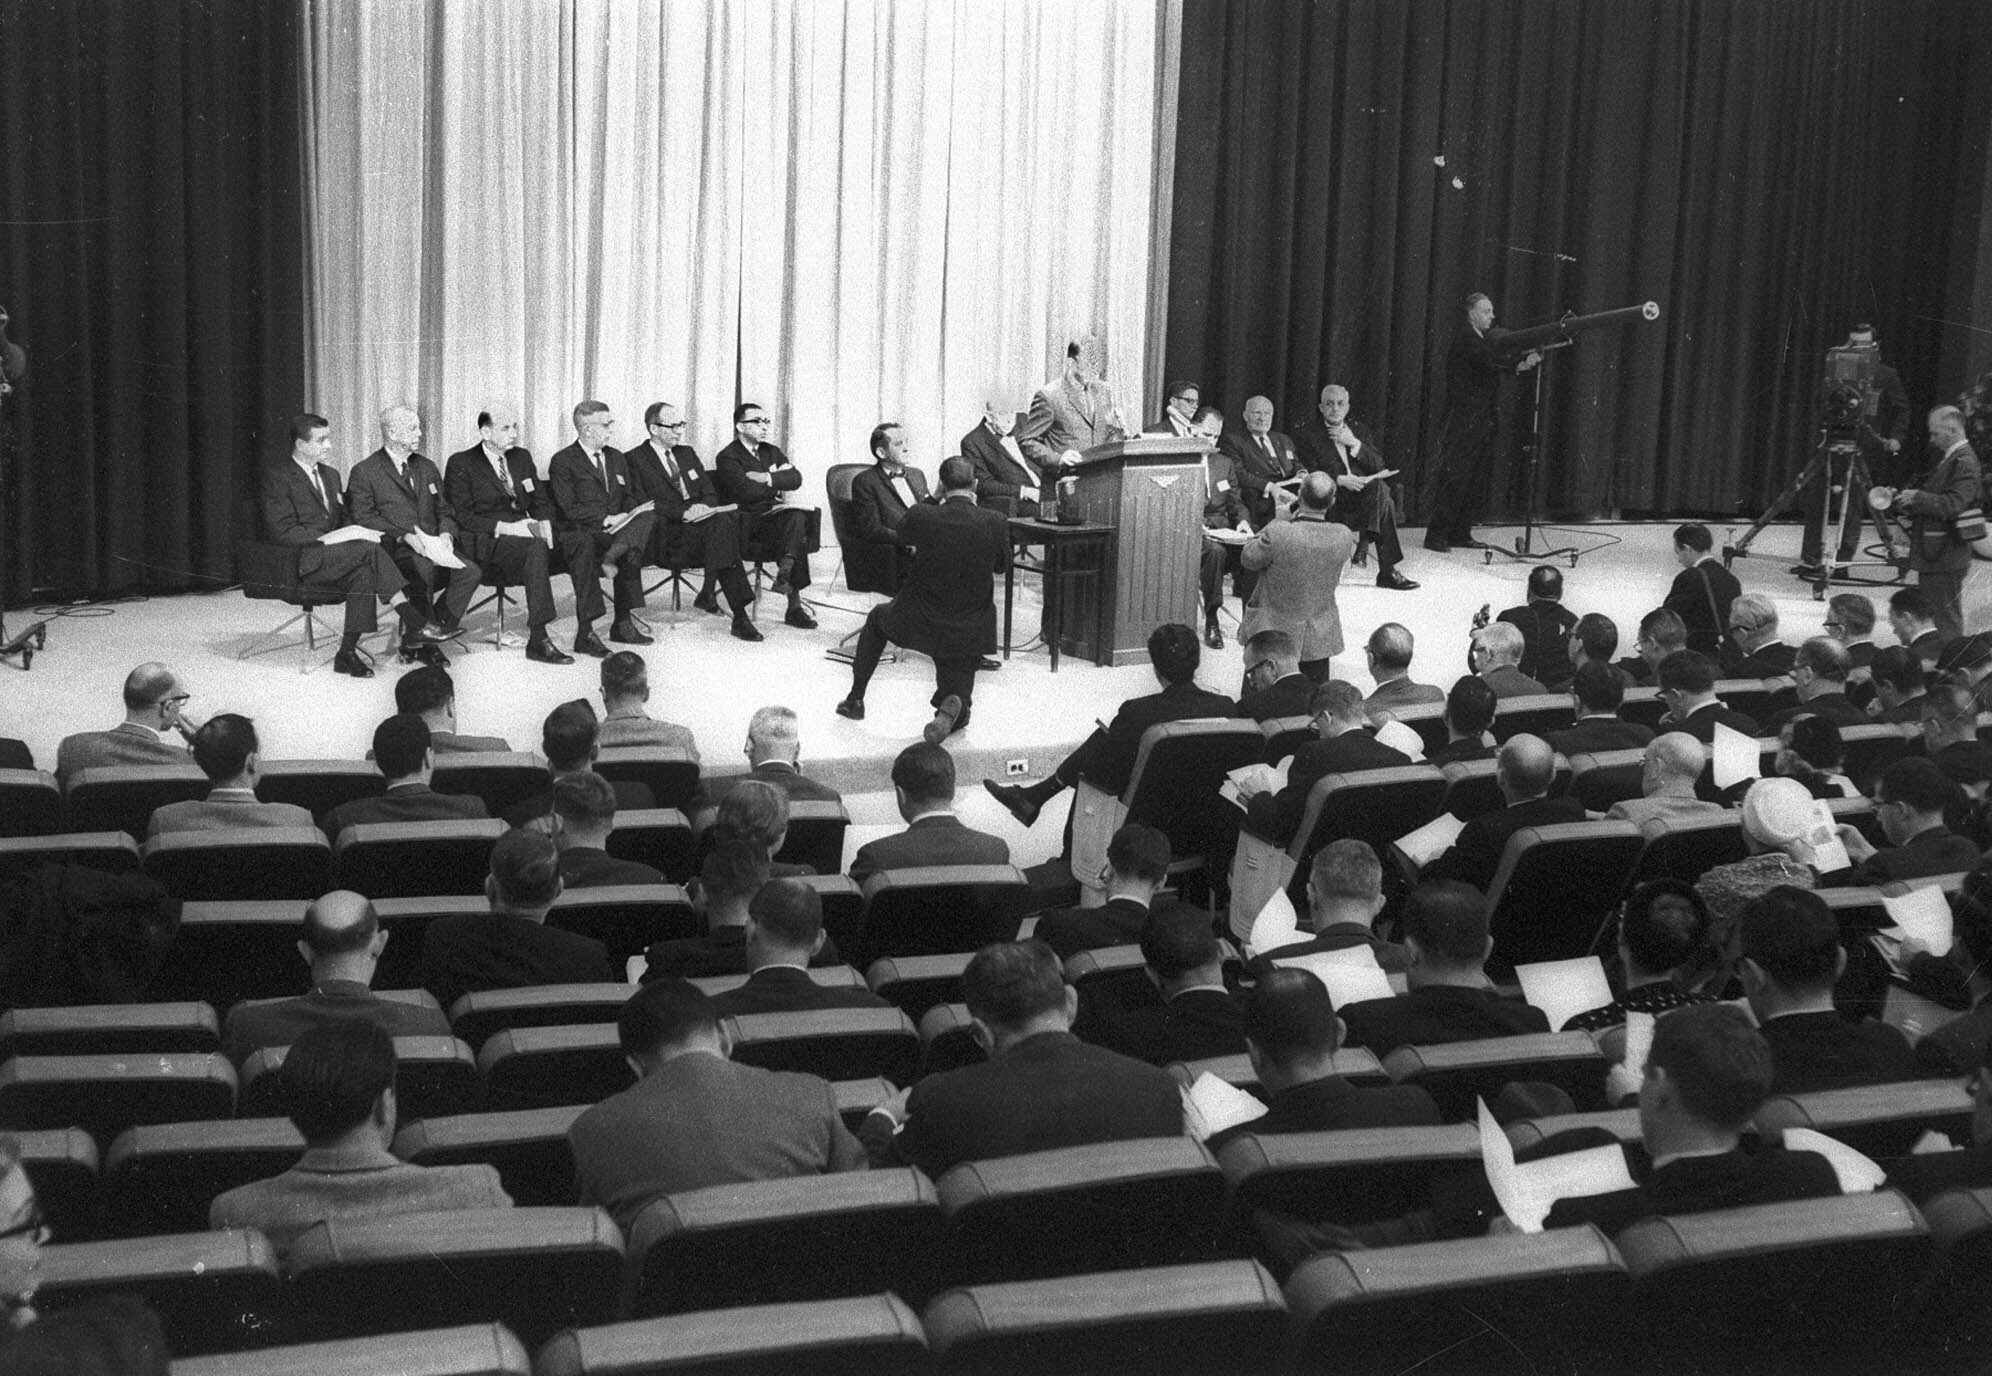 U.S. Surgeon General Luther Terry, at rostrum, answers questions on a landmark report on the dangers of smoking during a Jan. 11, 1964 news conference in Washington.  Members of his advisory committee sit behind him, with Dr. Emmanuel Farber sixth from left, with arms folded